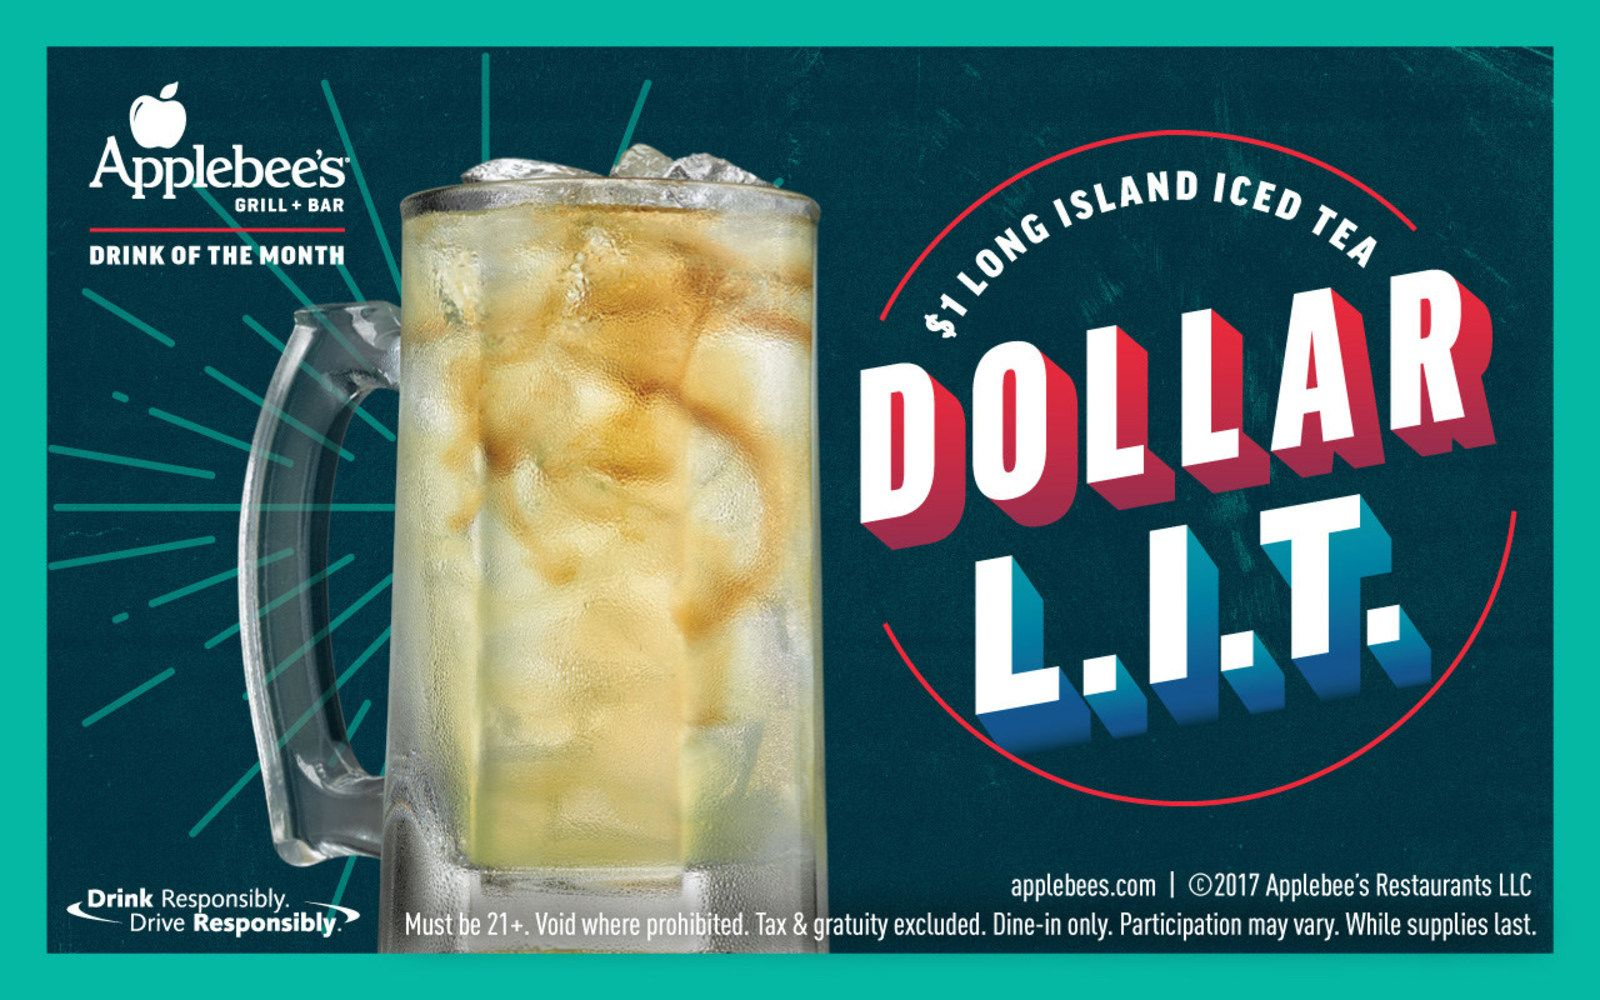 Applebee's Offer $1 Long Island Iced Tea (Dollar L.I.T) for the Month of December